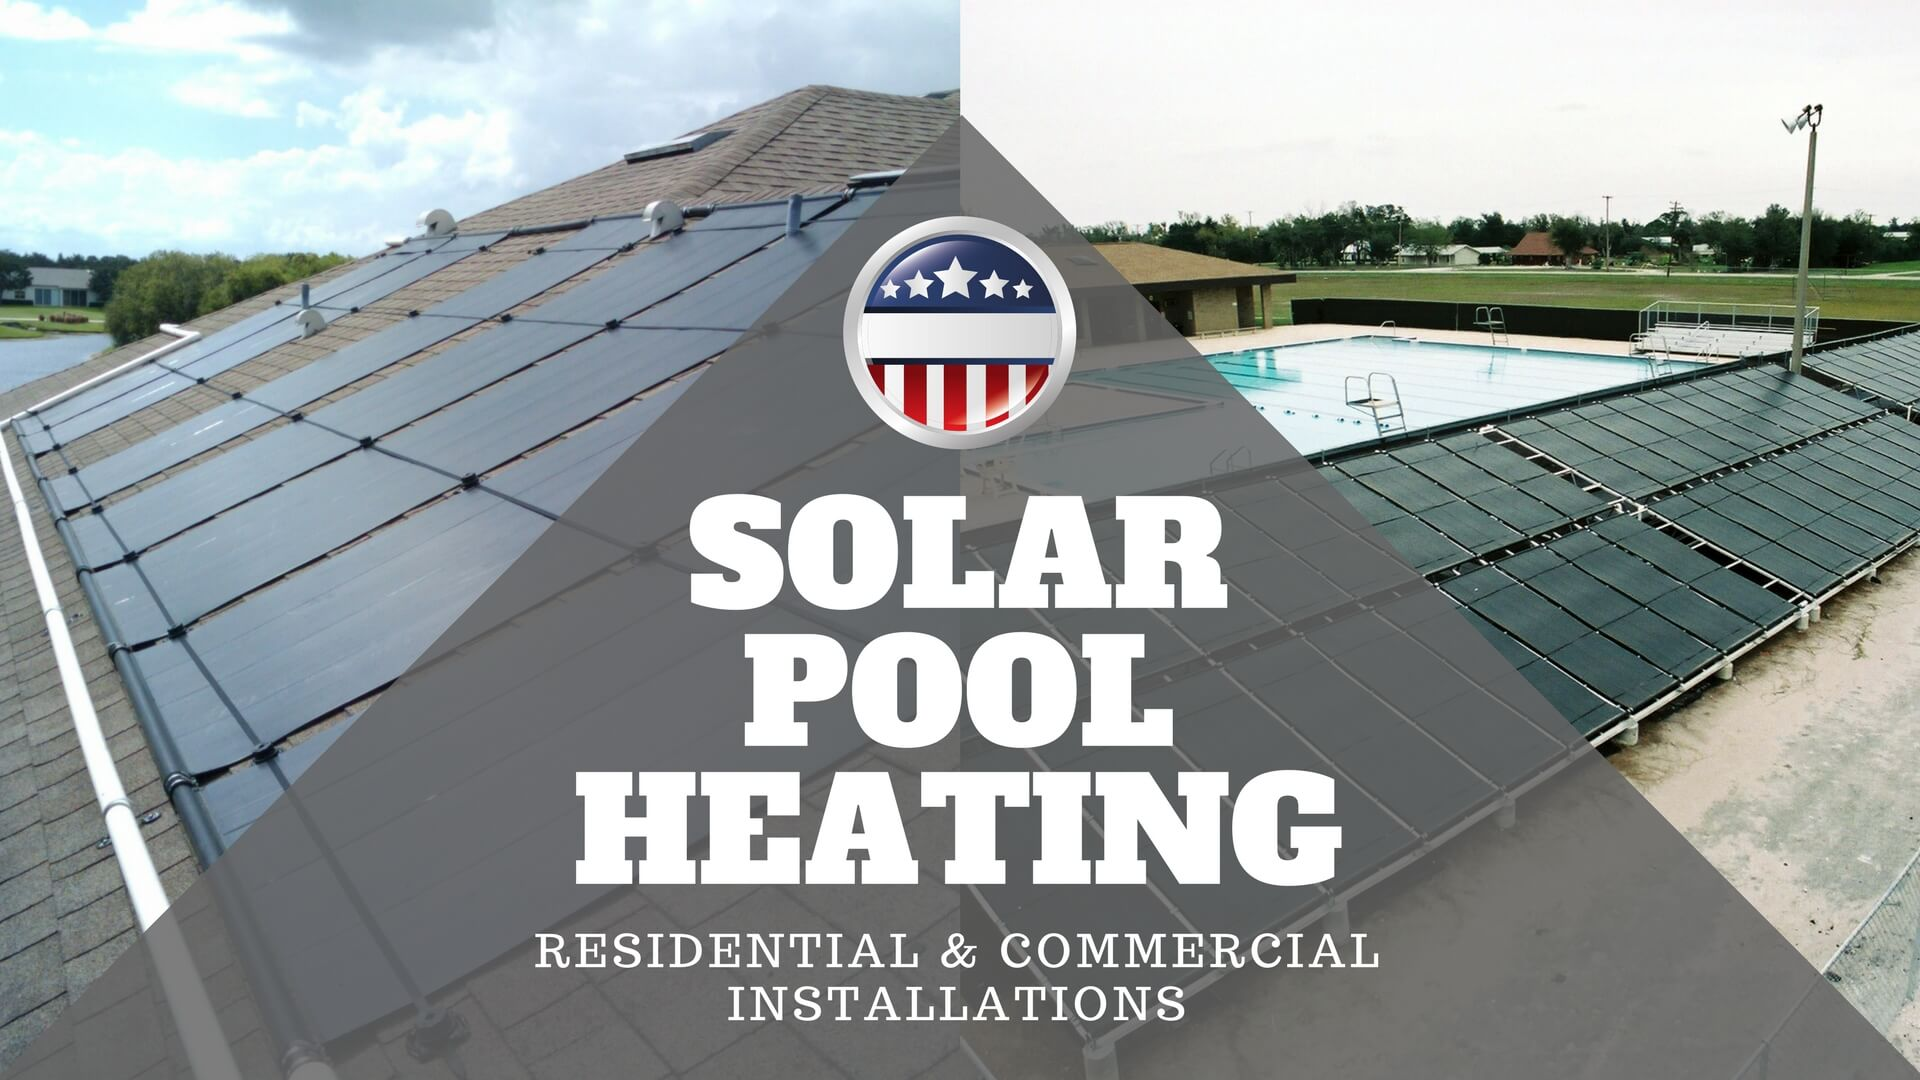 Solar Pool Heaters, Solar Pool Heating, Residential and Commercial Solar Electric Equipment and Installation Services